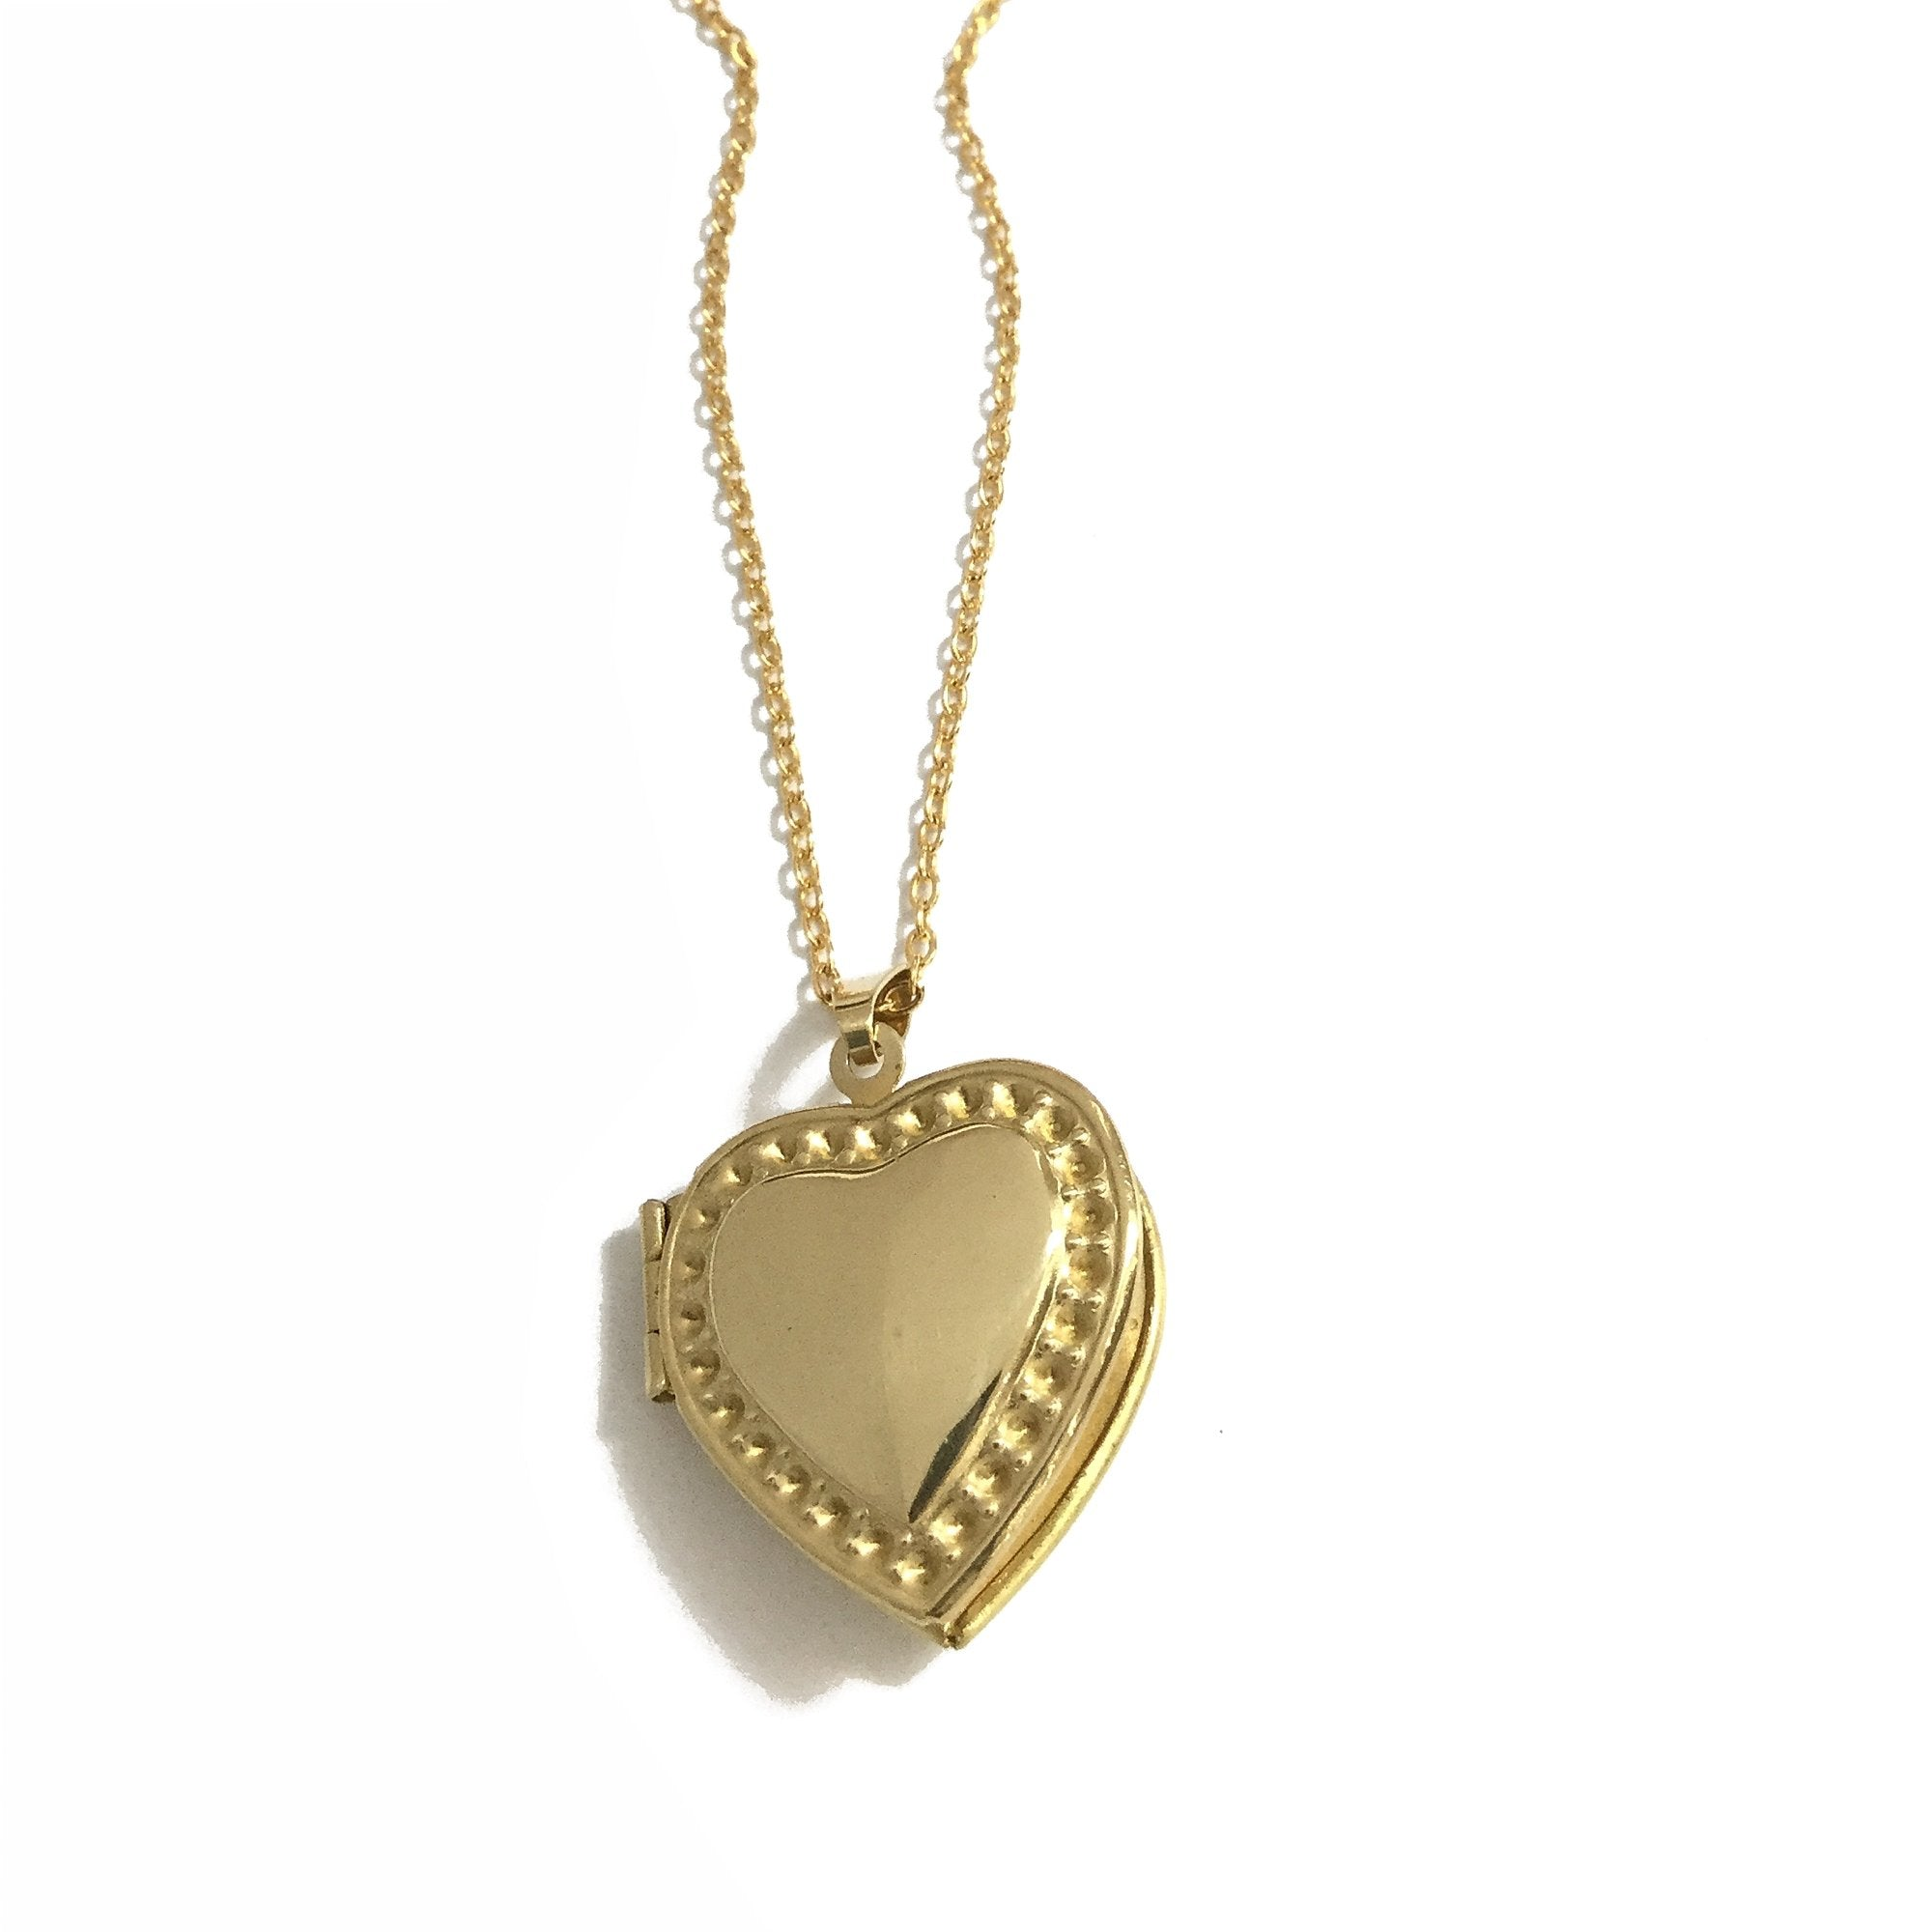 Golden brass keepsake heart locket necklace